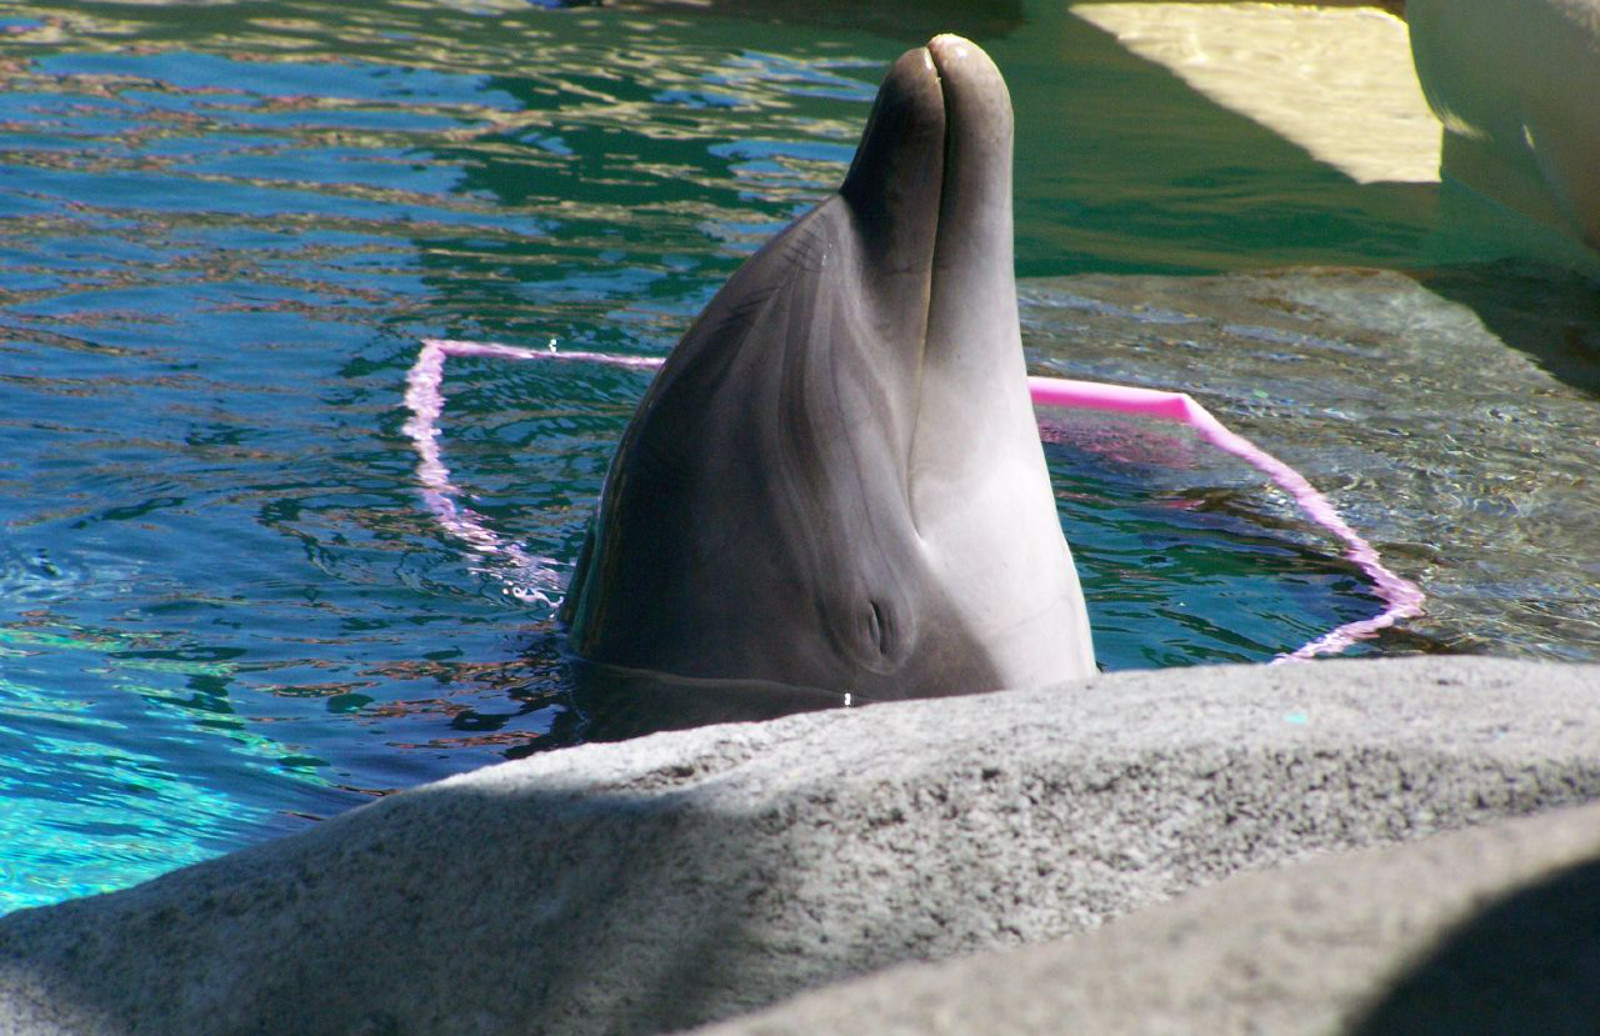 As Taiji's Cove Season Begins, Dolphin Trainers Get Flack for Their Role in This Cruel 'Tradition'